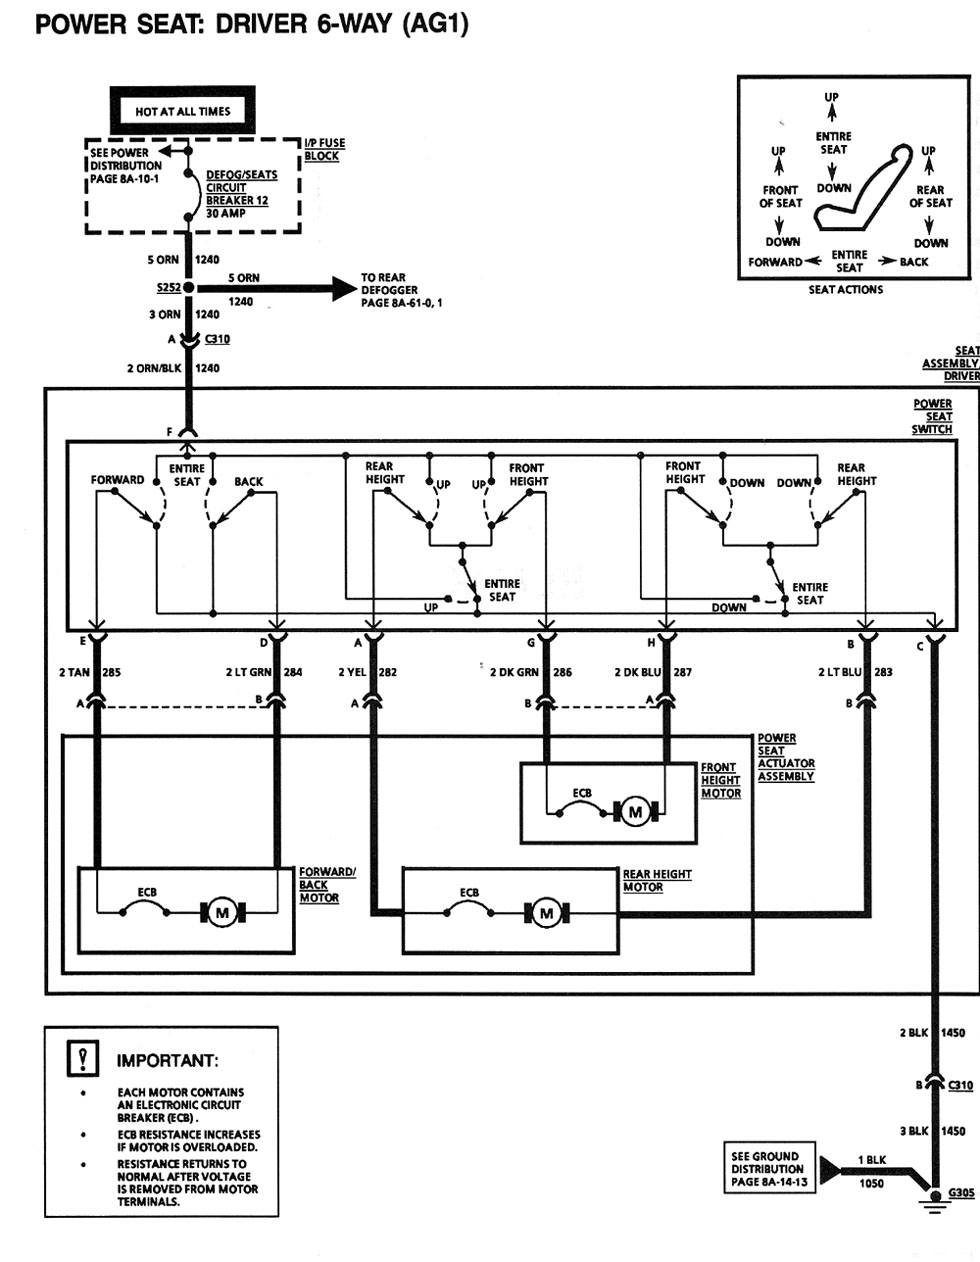 medium resolution of 2011 camaro ac wiring diagram wiring diagram article review 2011 camaro ac wiring diagram